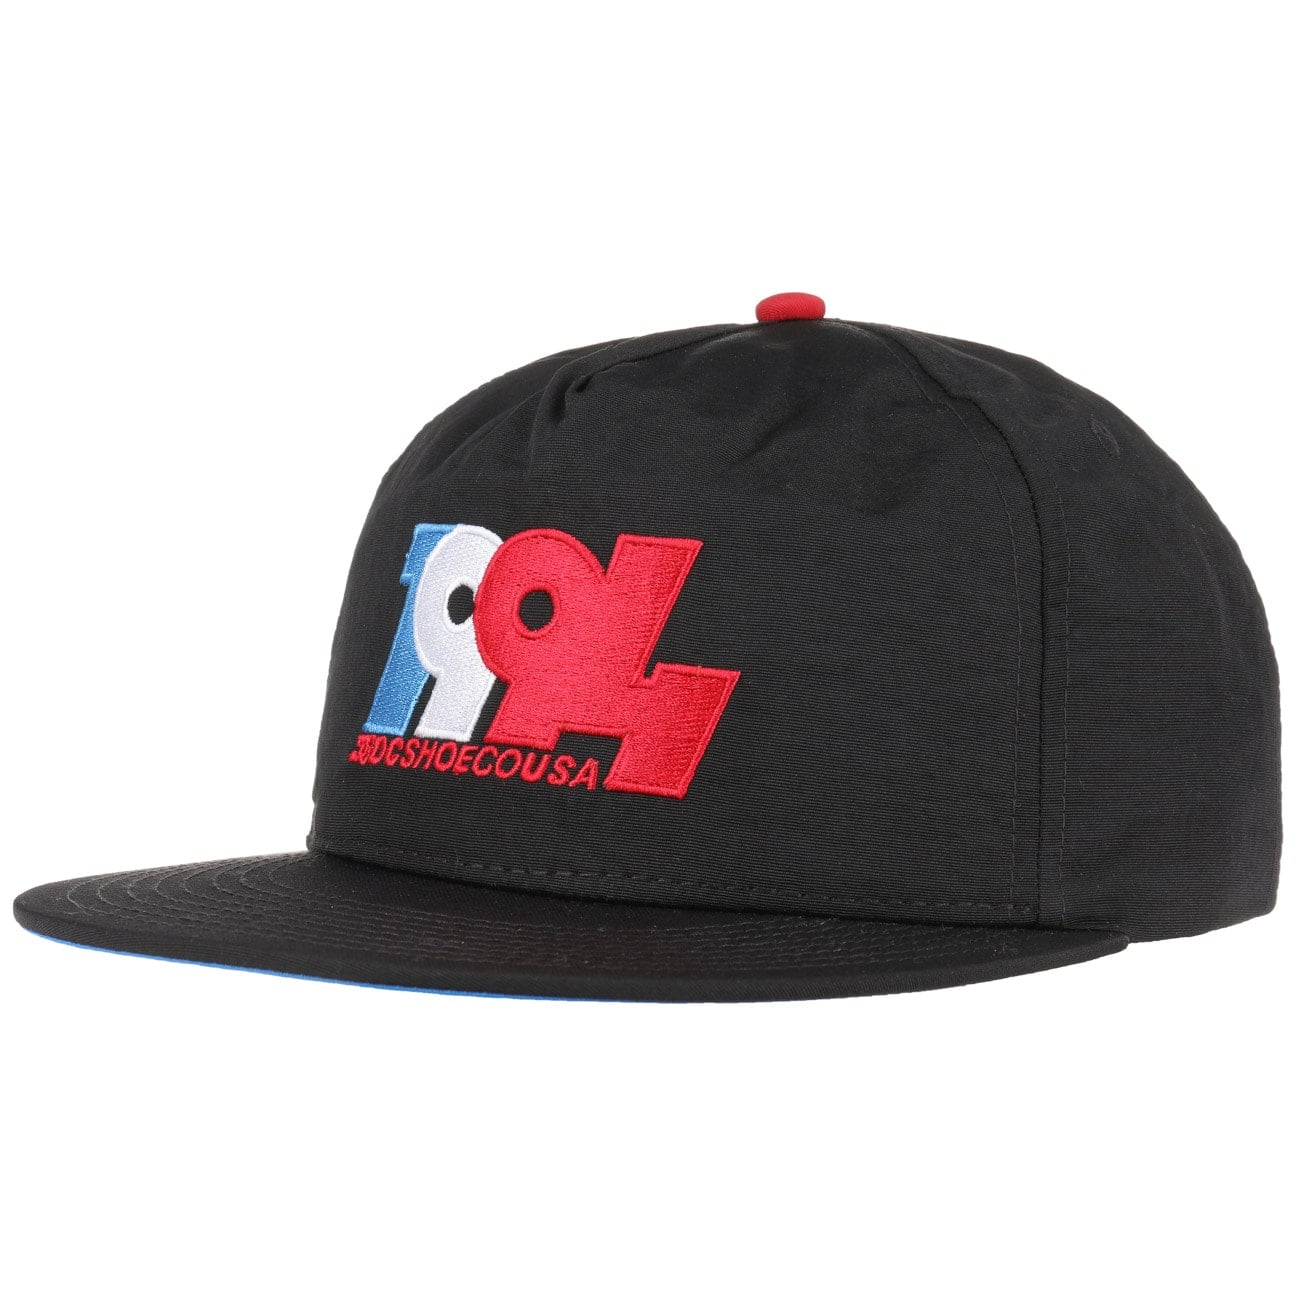 Gorra Graduate Snapback by DC Shoes Co  gorra de baseball